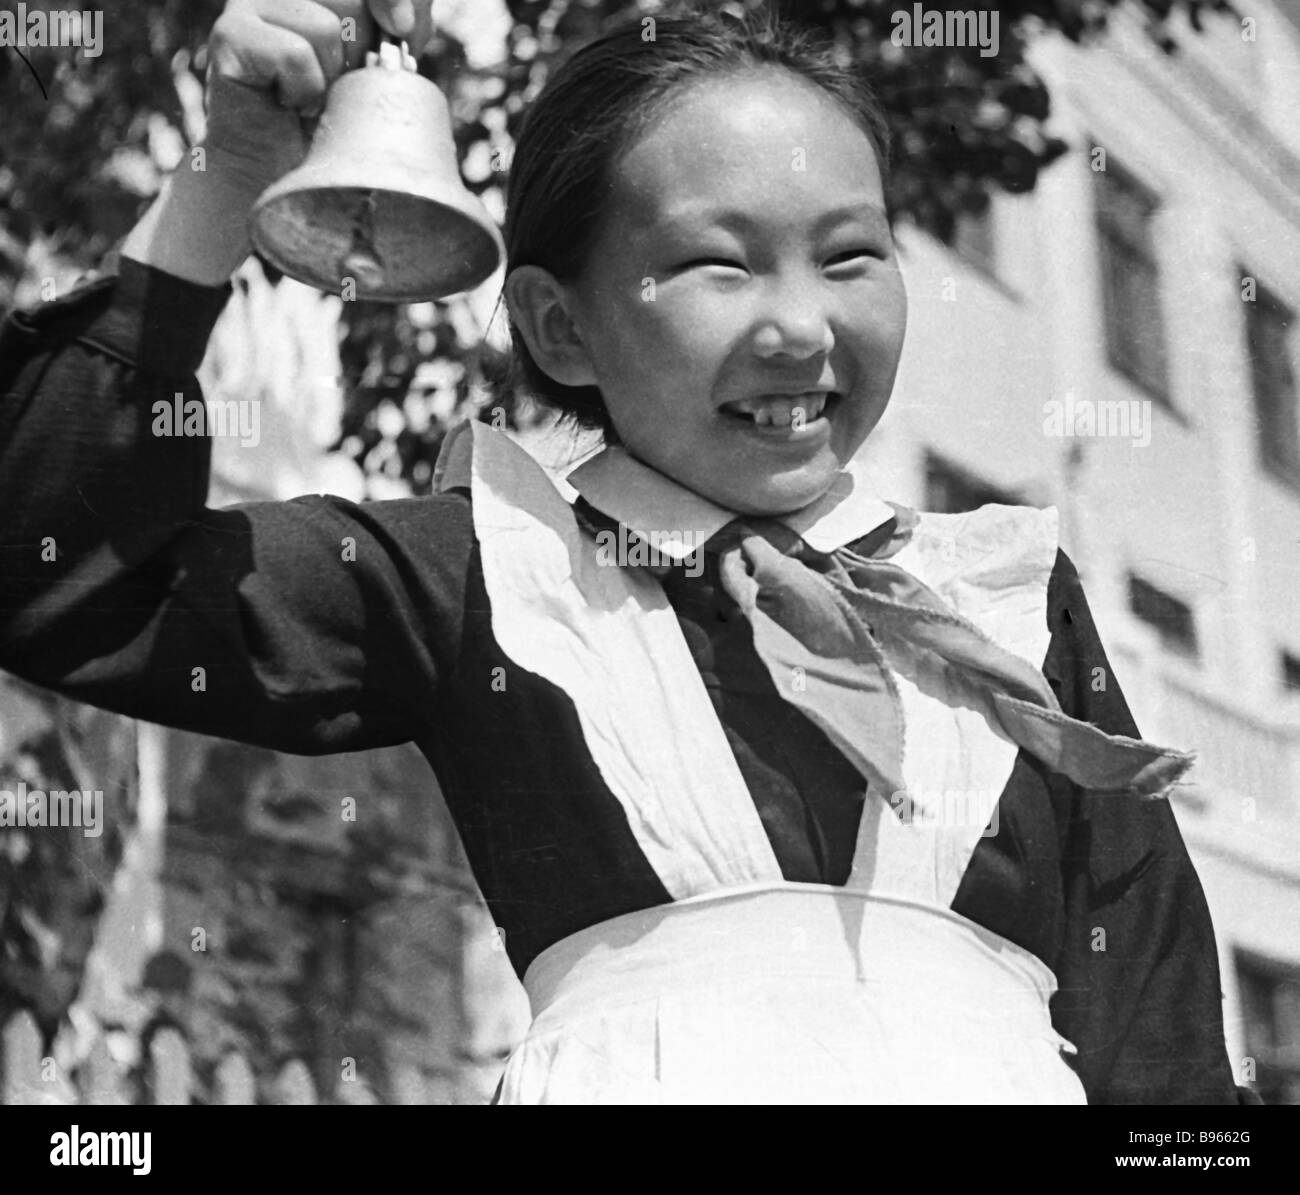 A Pioneer wearing a parade uniform tolls the bell on the last day of school - Stock Image